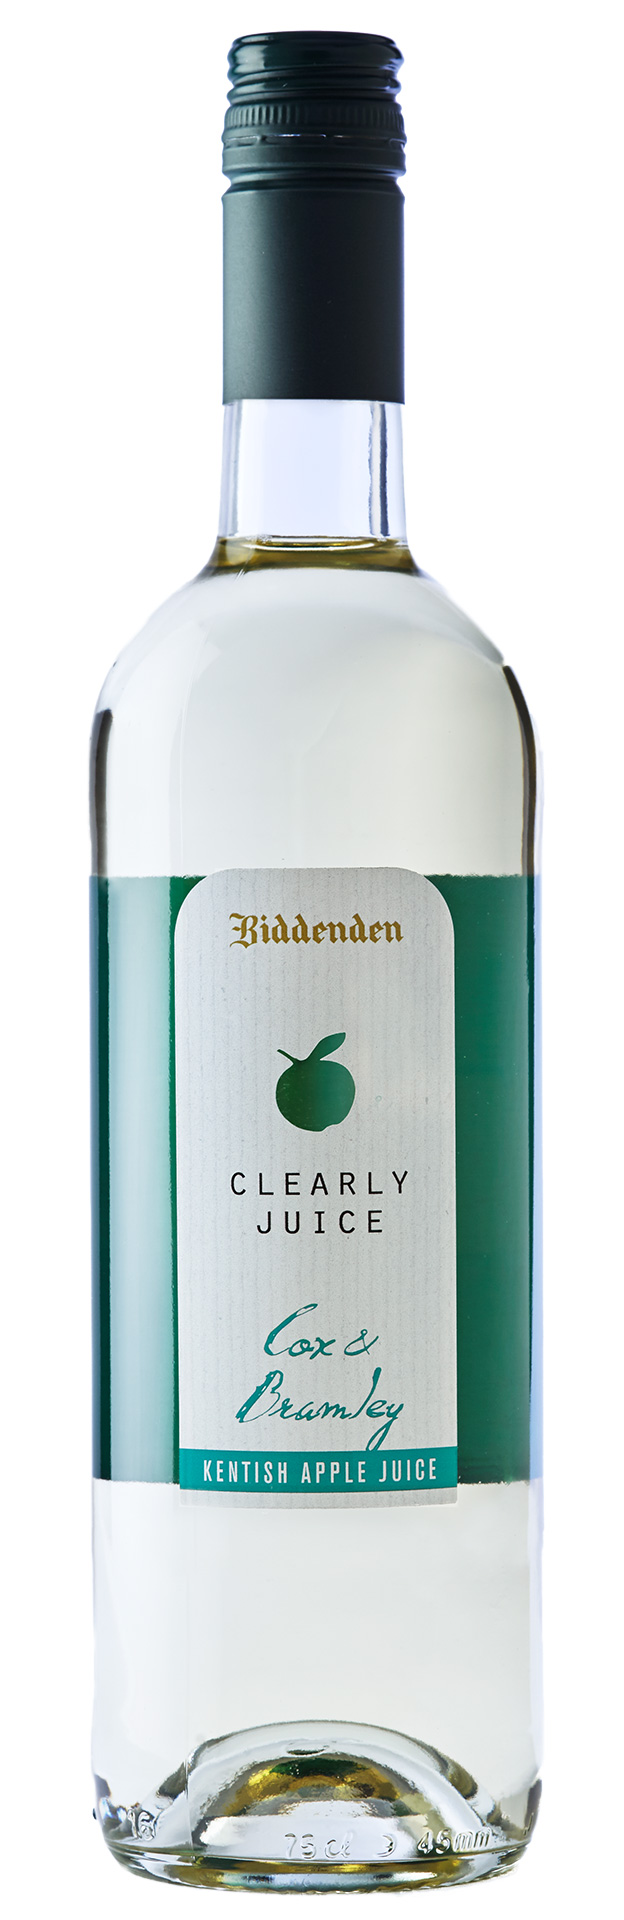 cox-bramley-clearly-juice